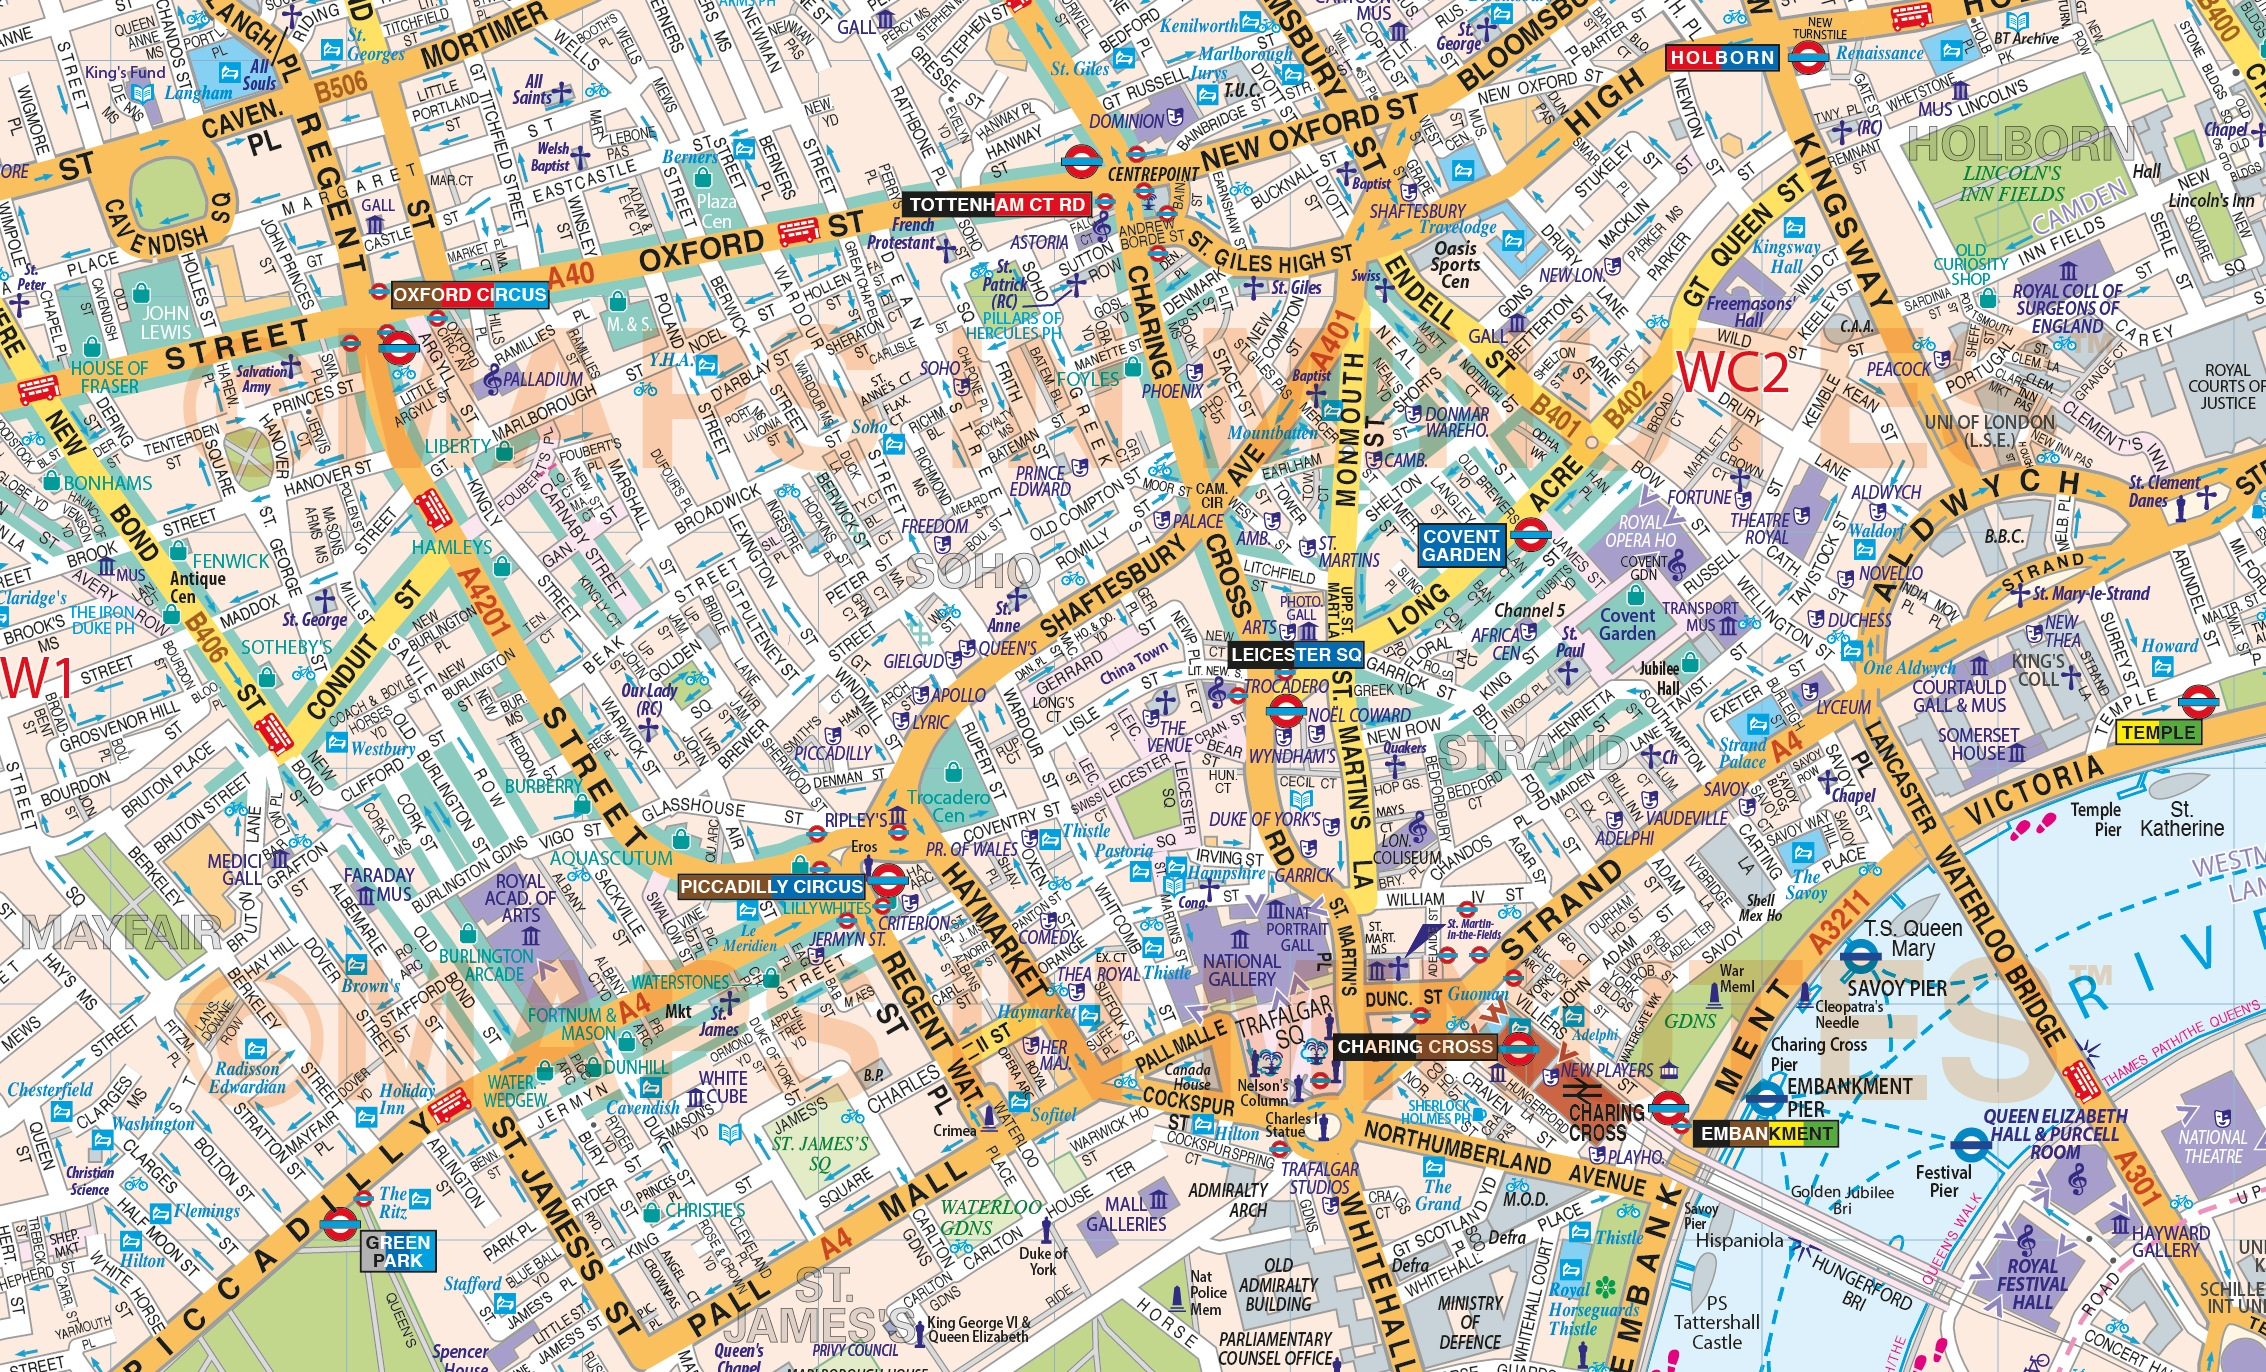 London Map Street.Vinyl Central London Street Map Large Size 1 2m D X 1 67m W